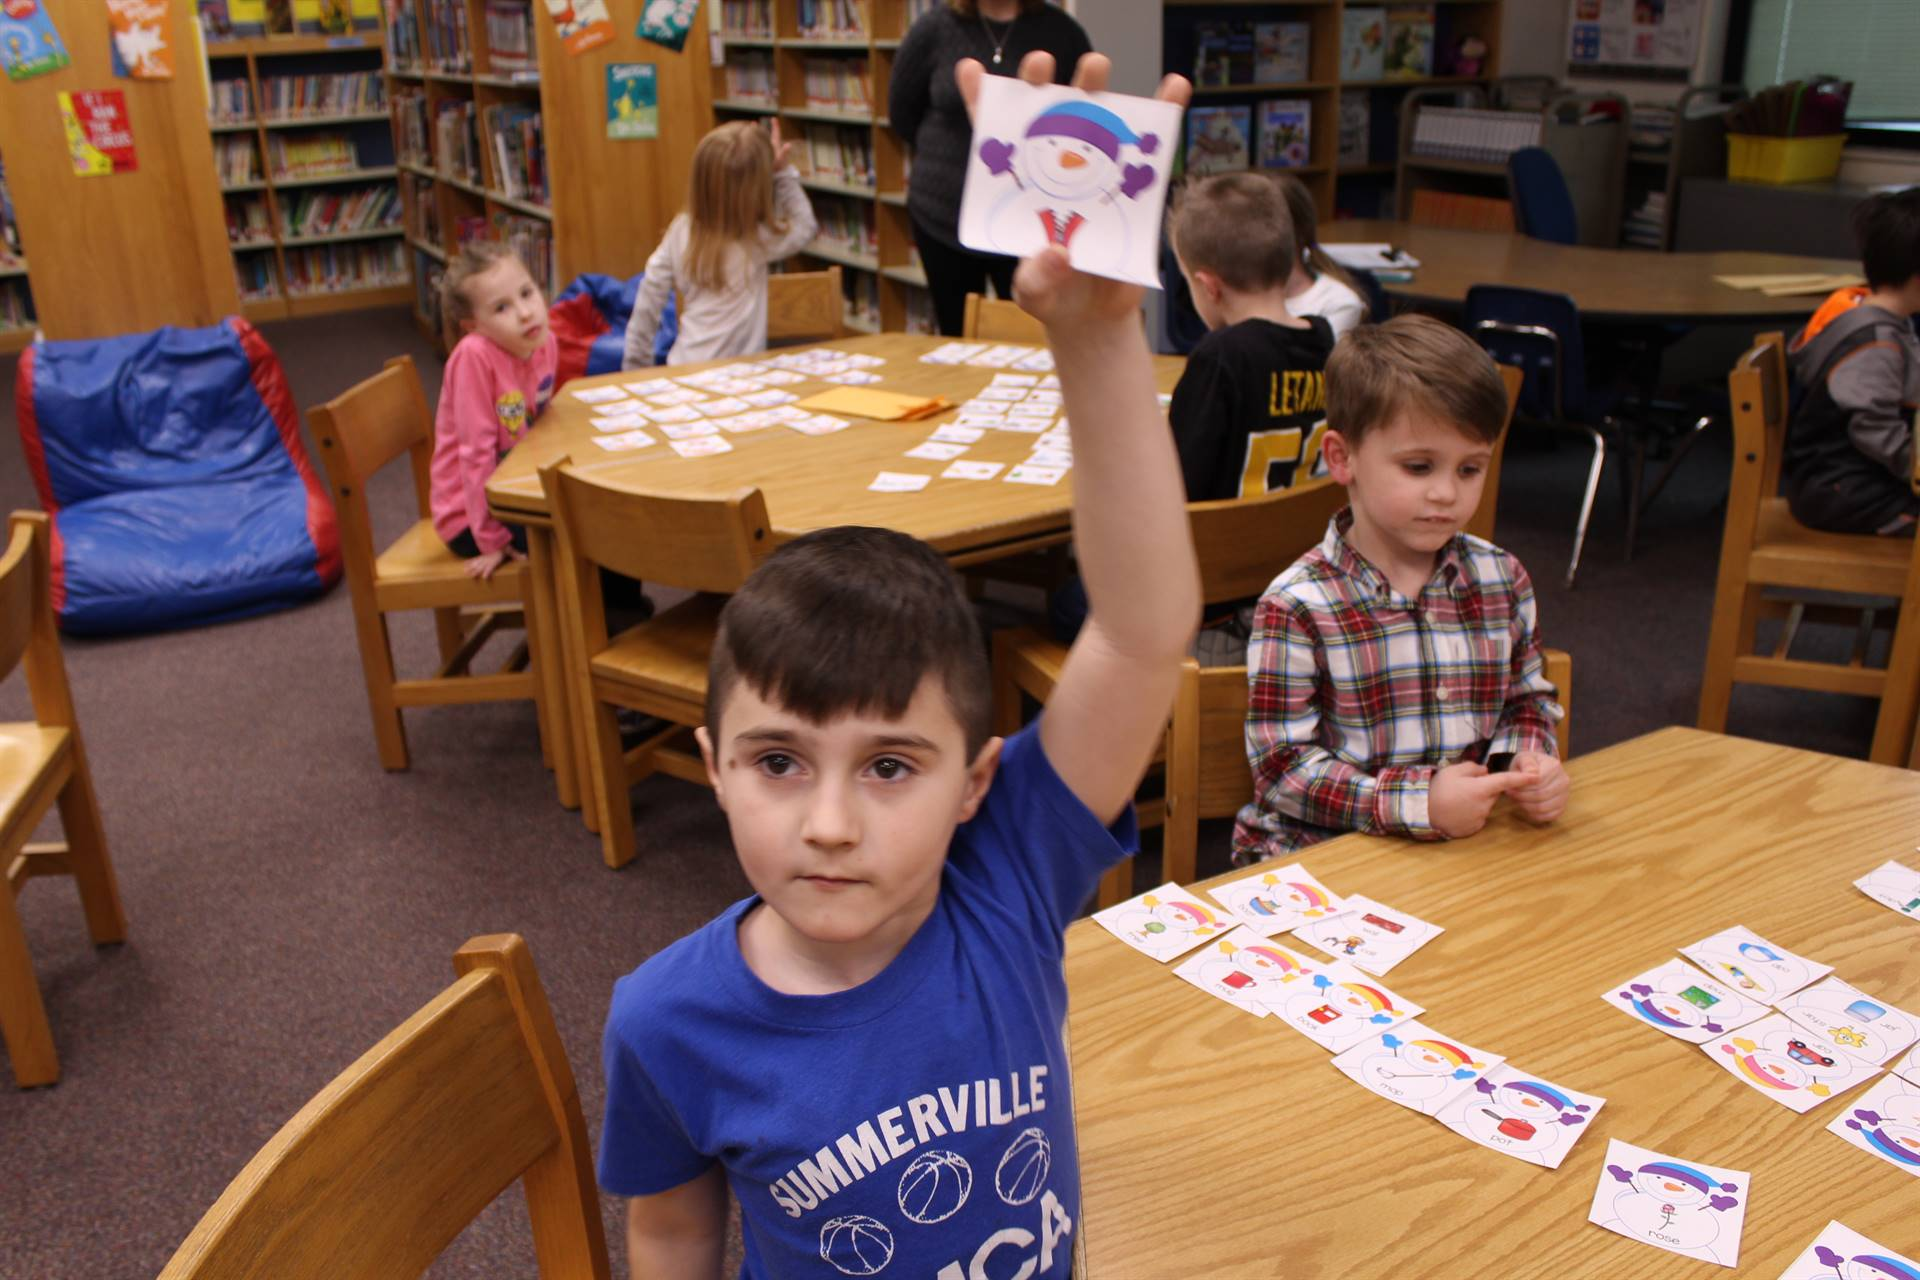 Student holding up a snowman card